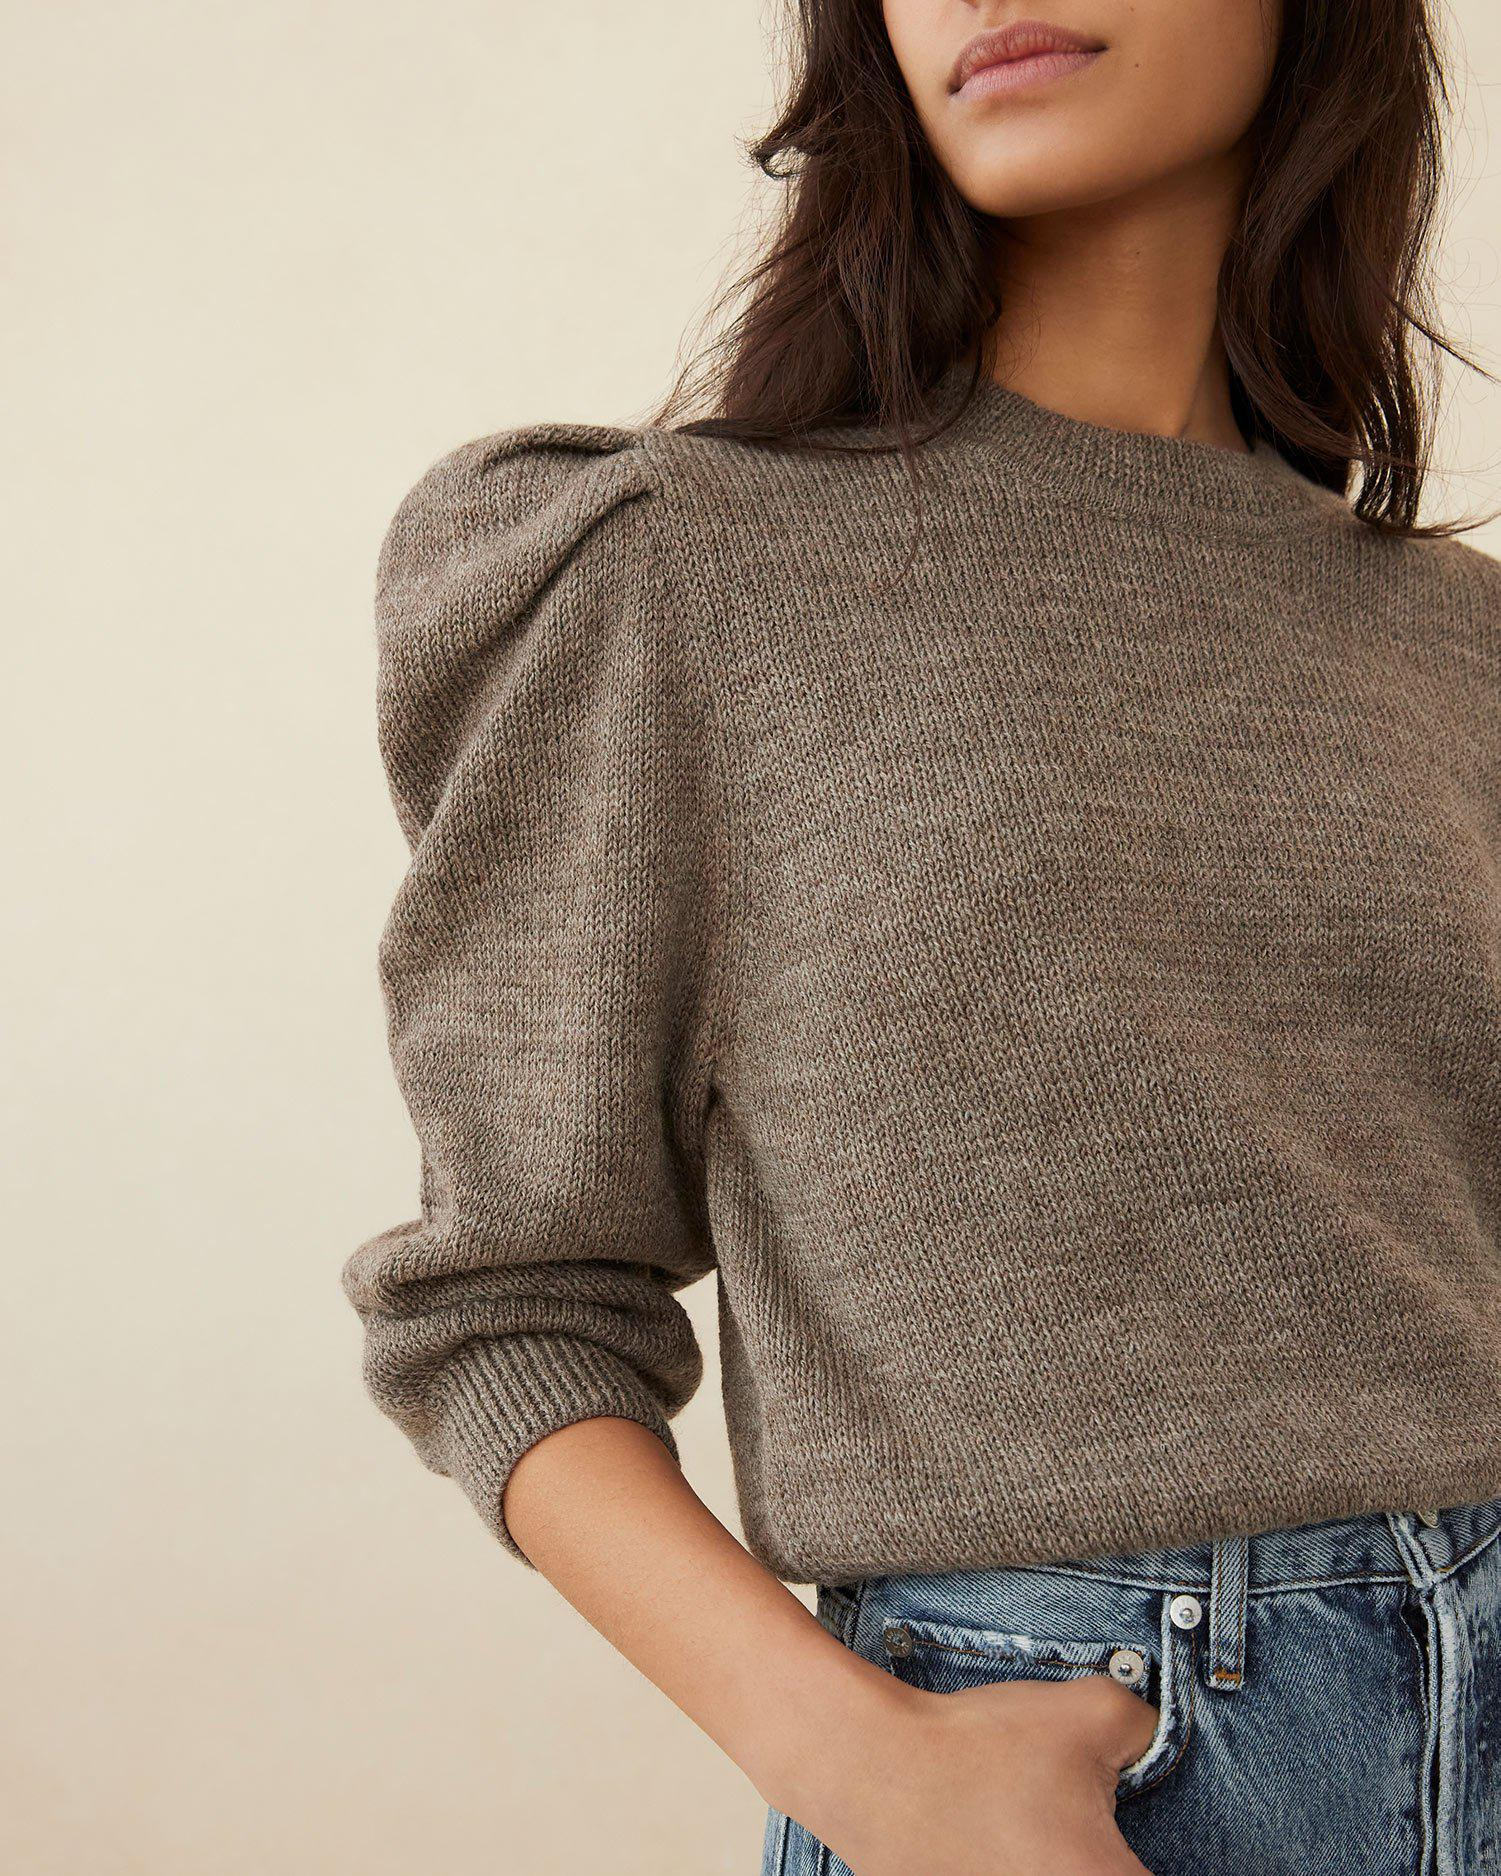 Knits for Good Heather Sweater 2